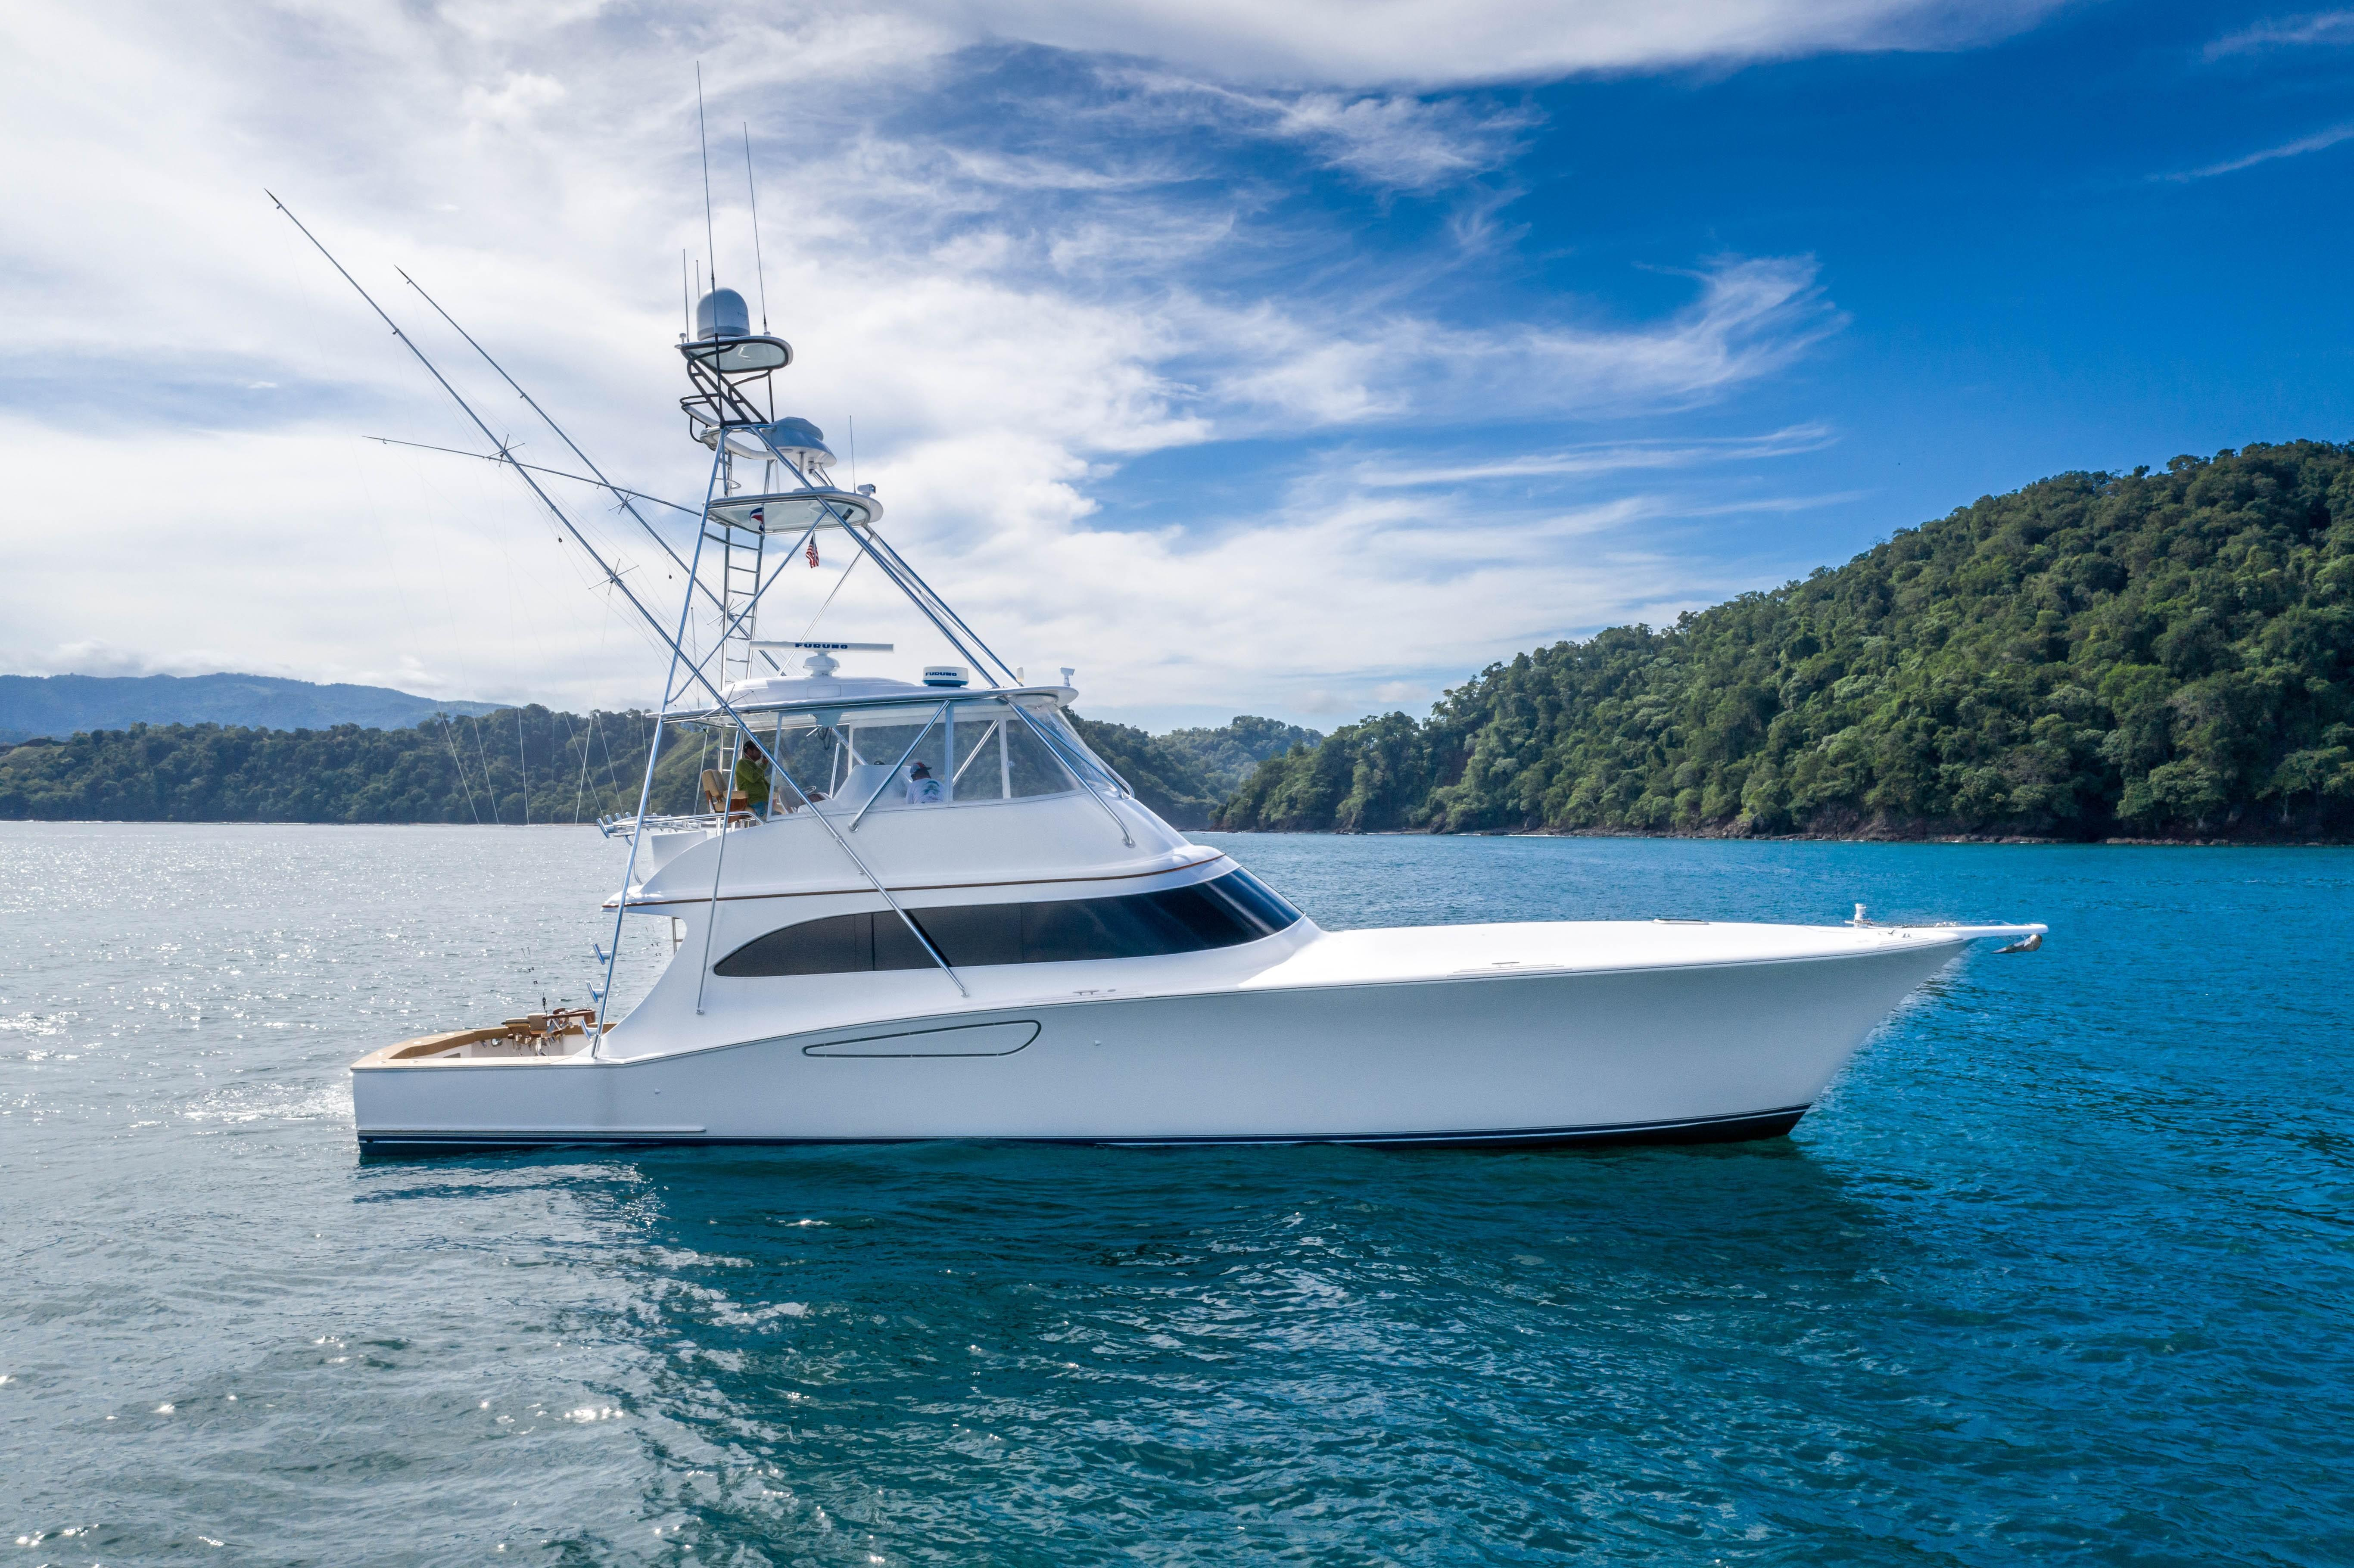 Pre-Owned used Yachts / Boats / For Sale in Puerto Rico